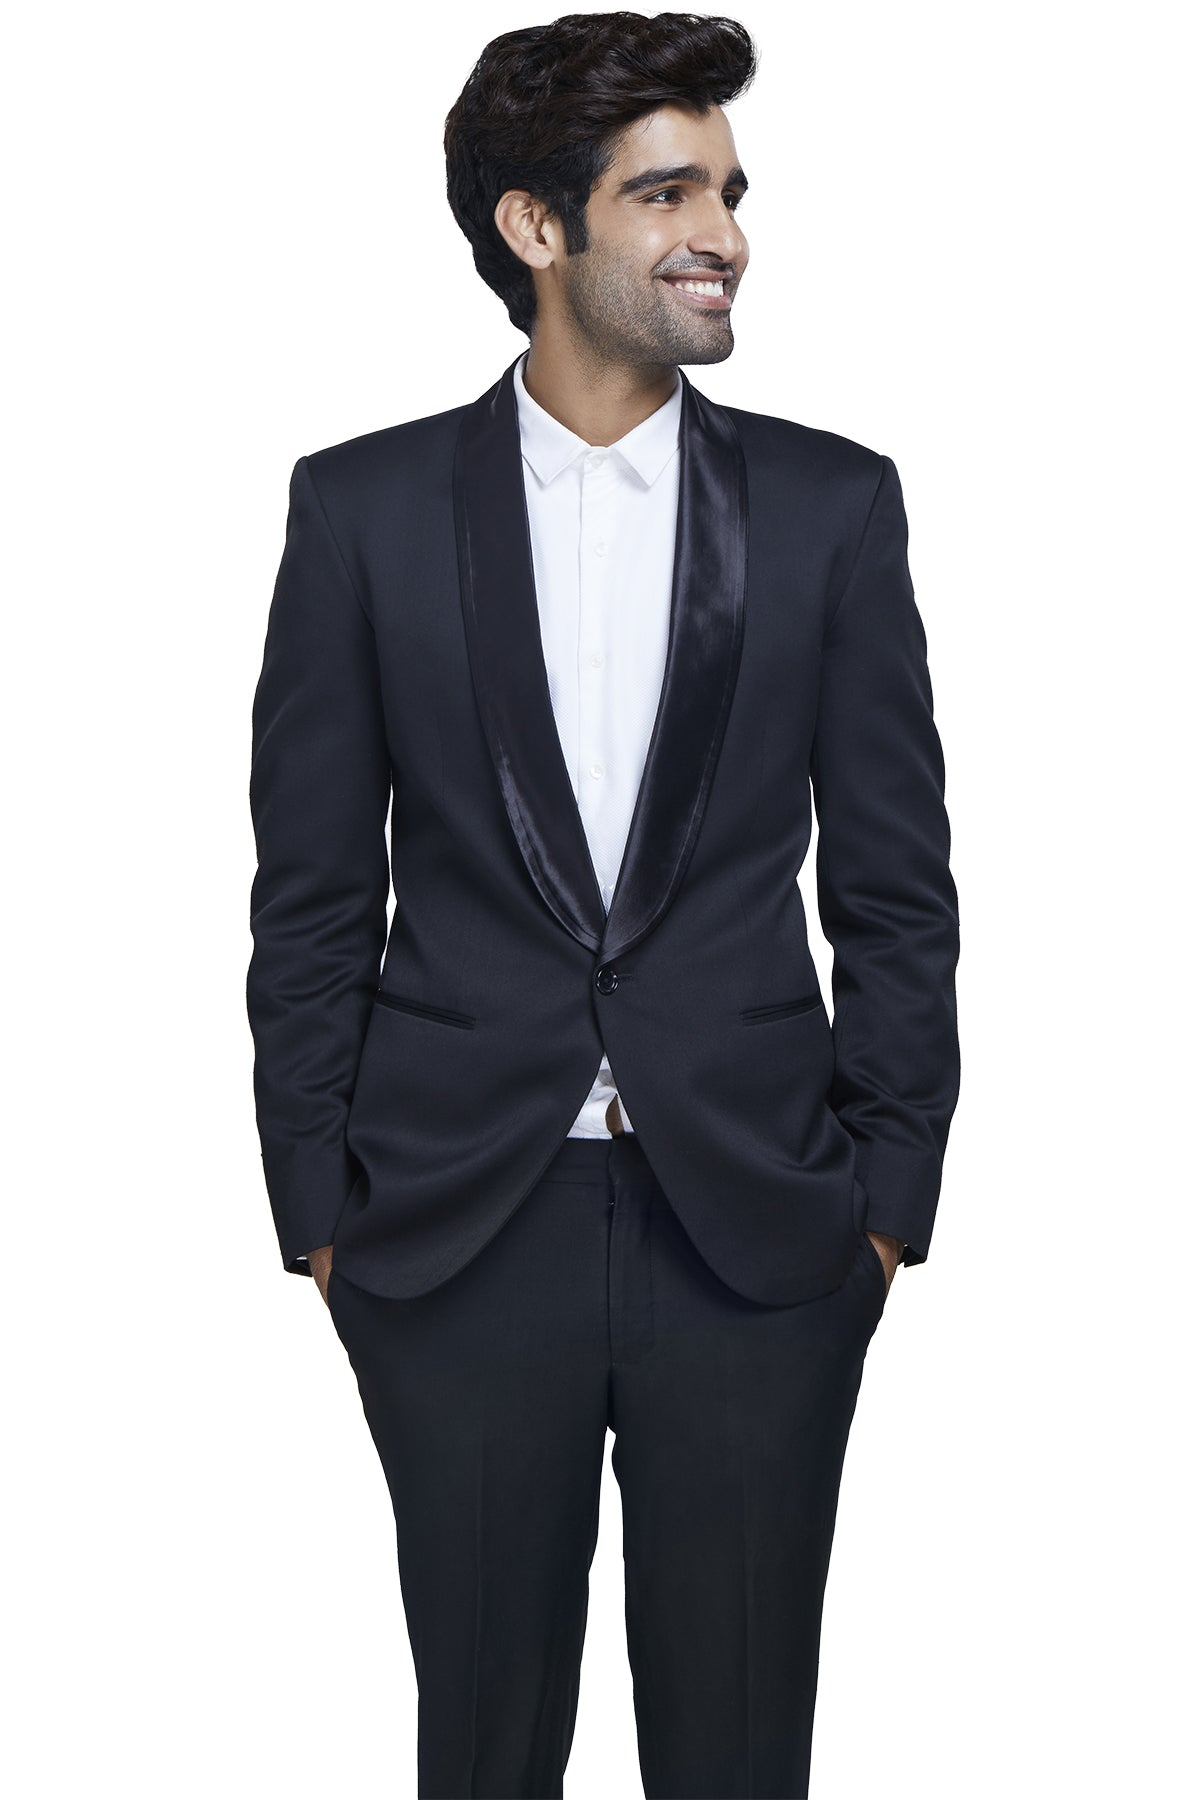 Blaze a statement trail in black! Rent out this dinner jacket with formal black trousers in a woolen polyester blend with satin round lapels for an added finesse.